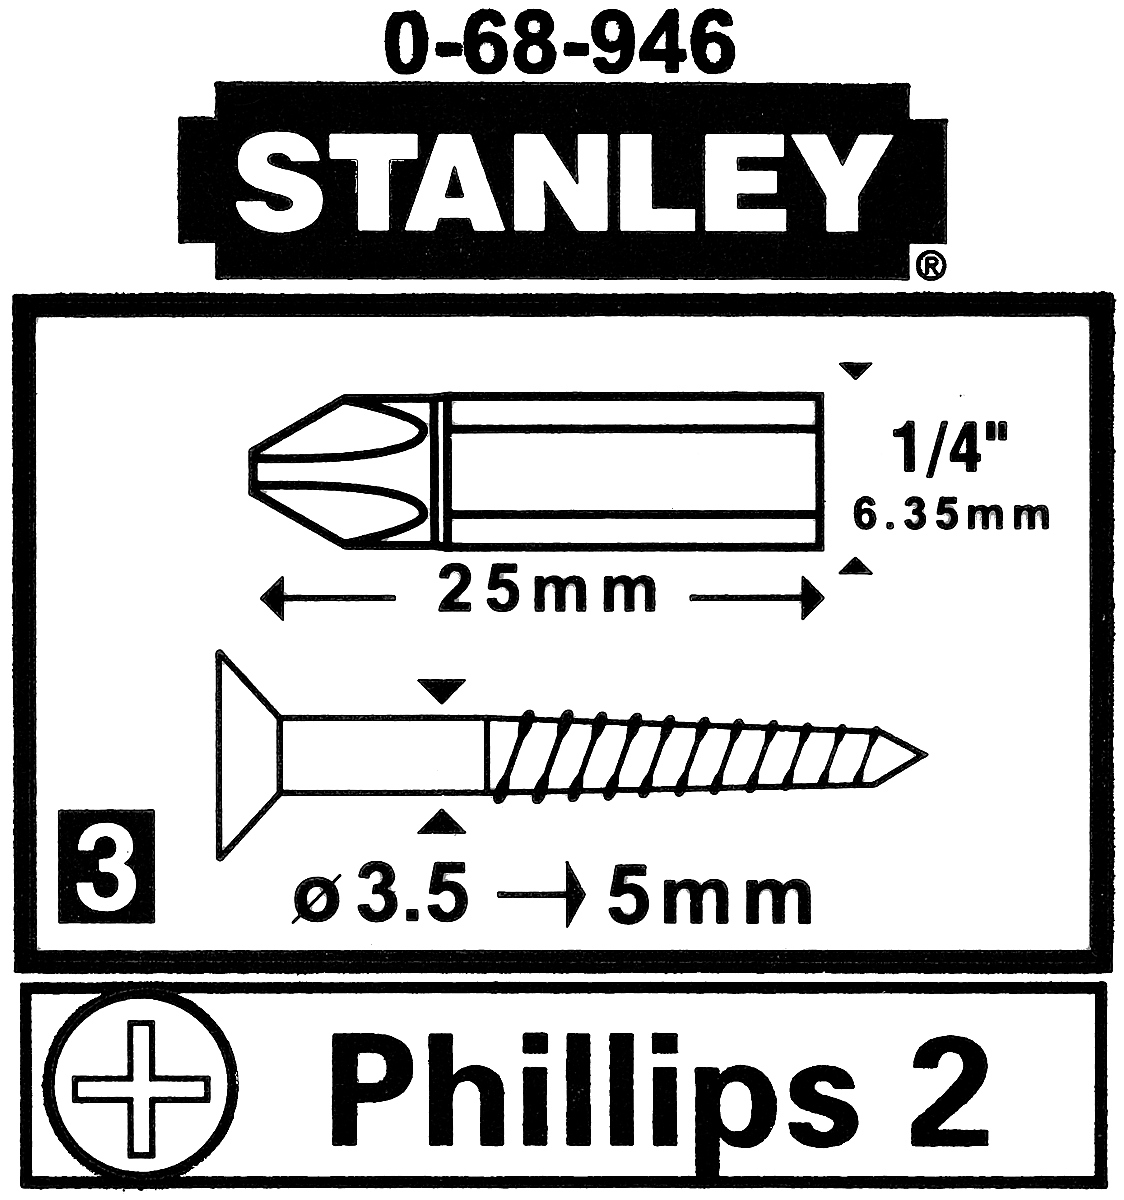 bit ph2 st 0 68 946 1 4 stanley other tools delta